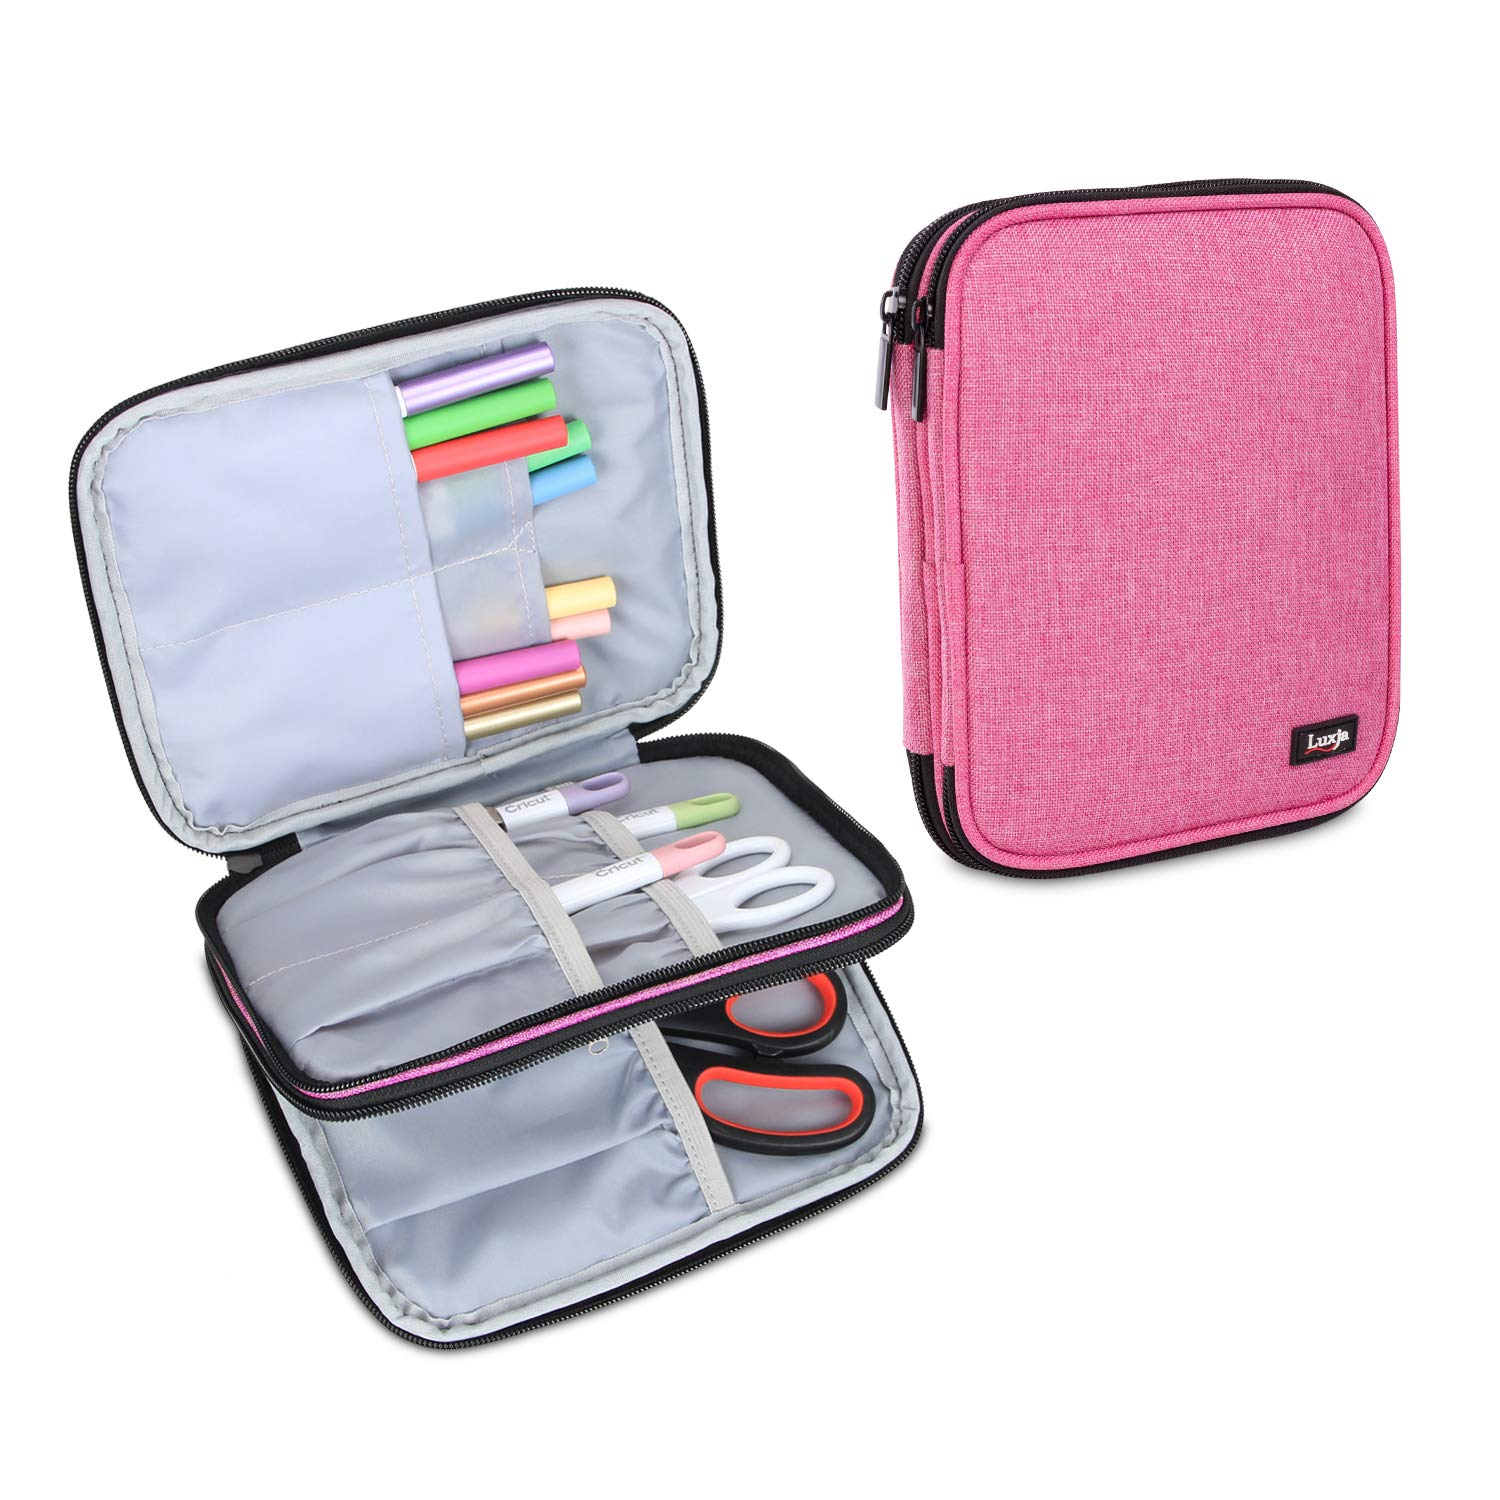 Luxja Carrying Bag for Cricut Pen Set and Basic Tool Set, Double-Layer Organizer for Cricut Accessories (Bag Only), Pink